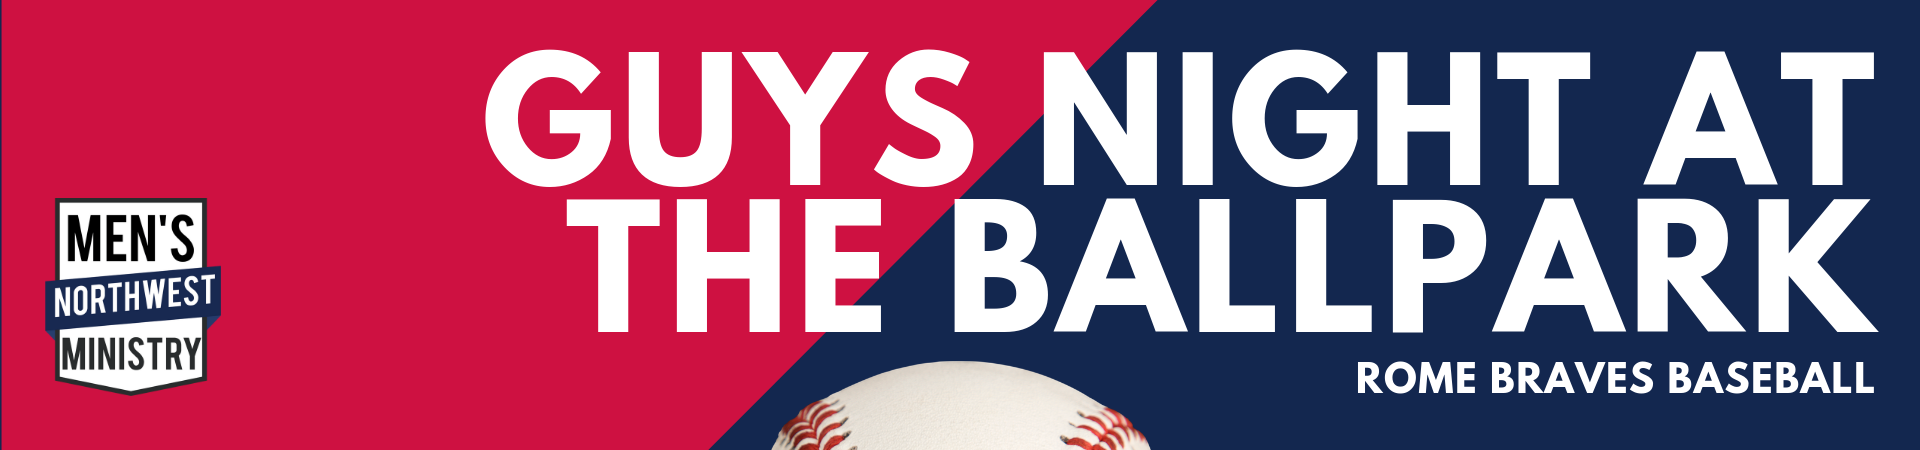 Guys Night at the Ballpark web banner.png